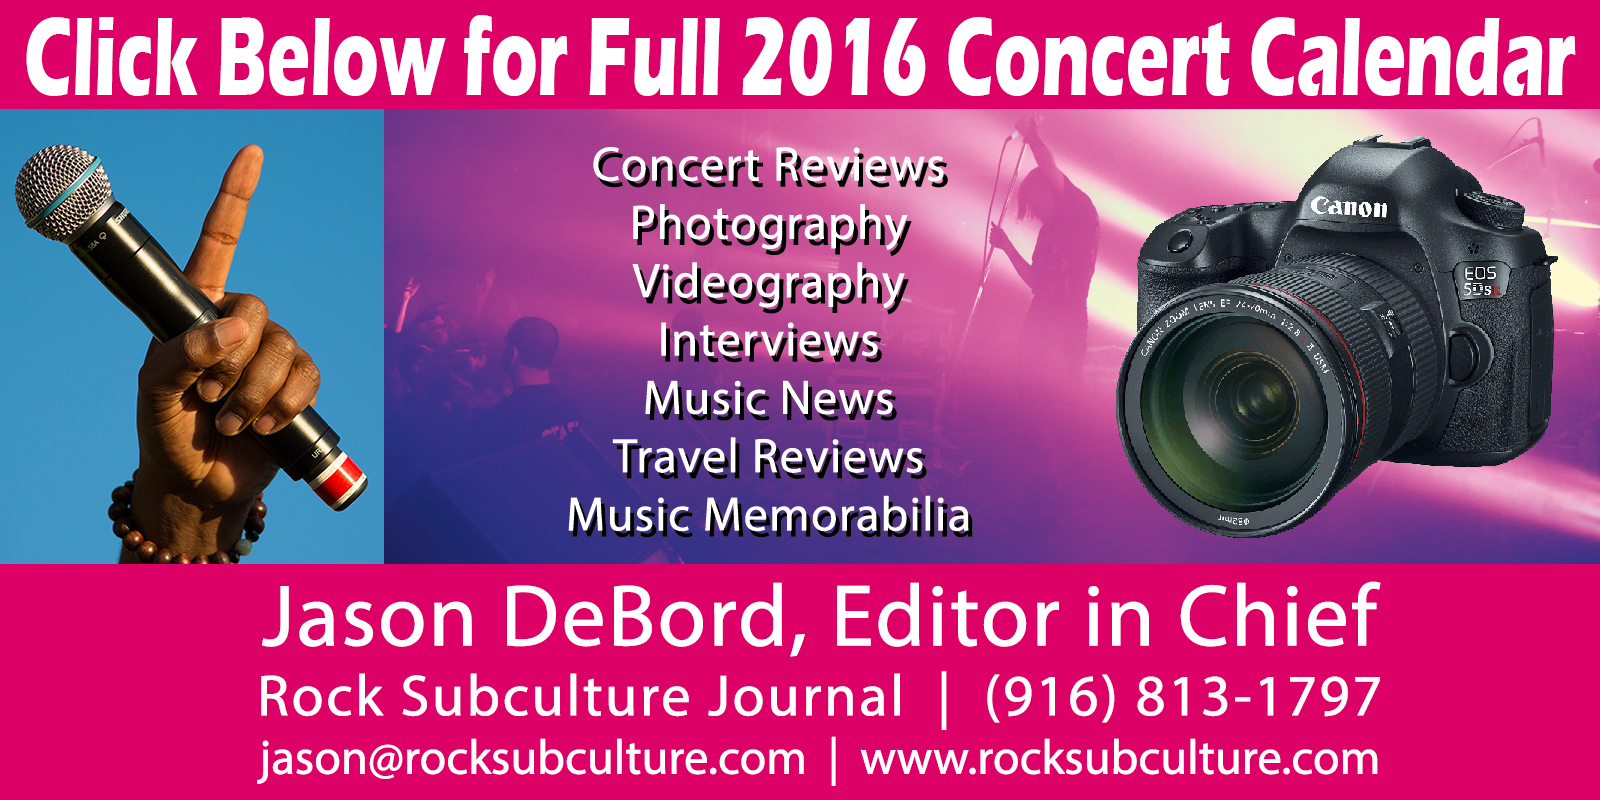 Rock-Subculture-Journal-2016-Concert-Calendar-Schedule-List